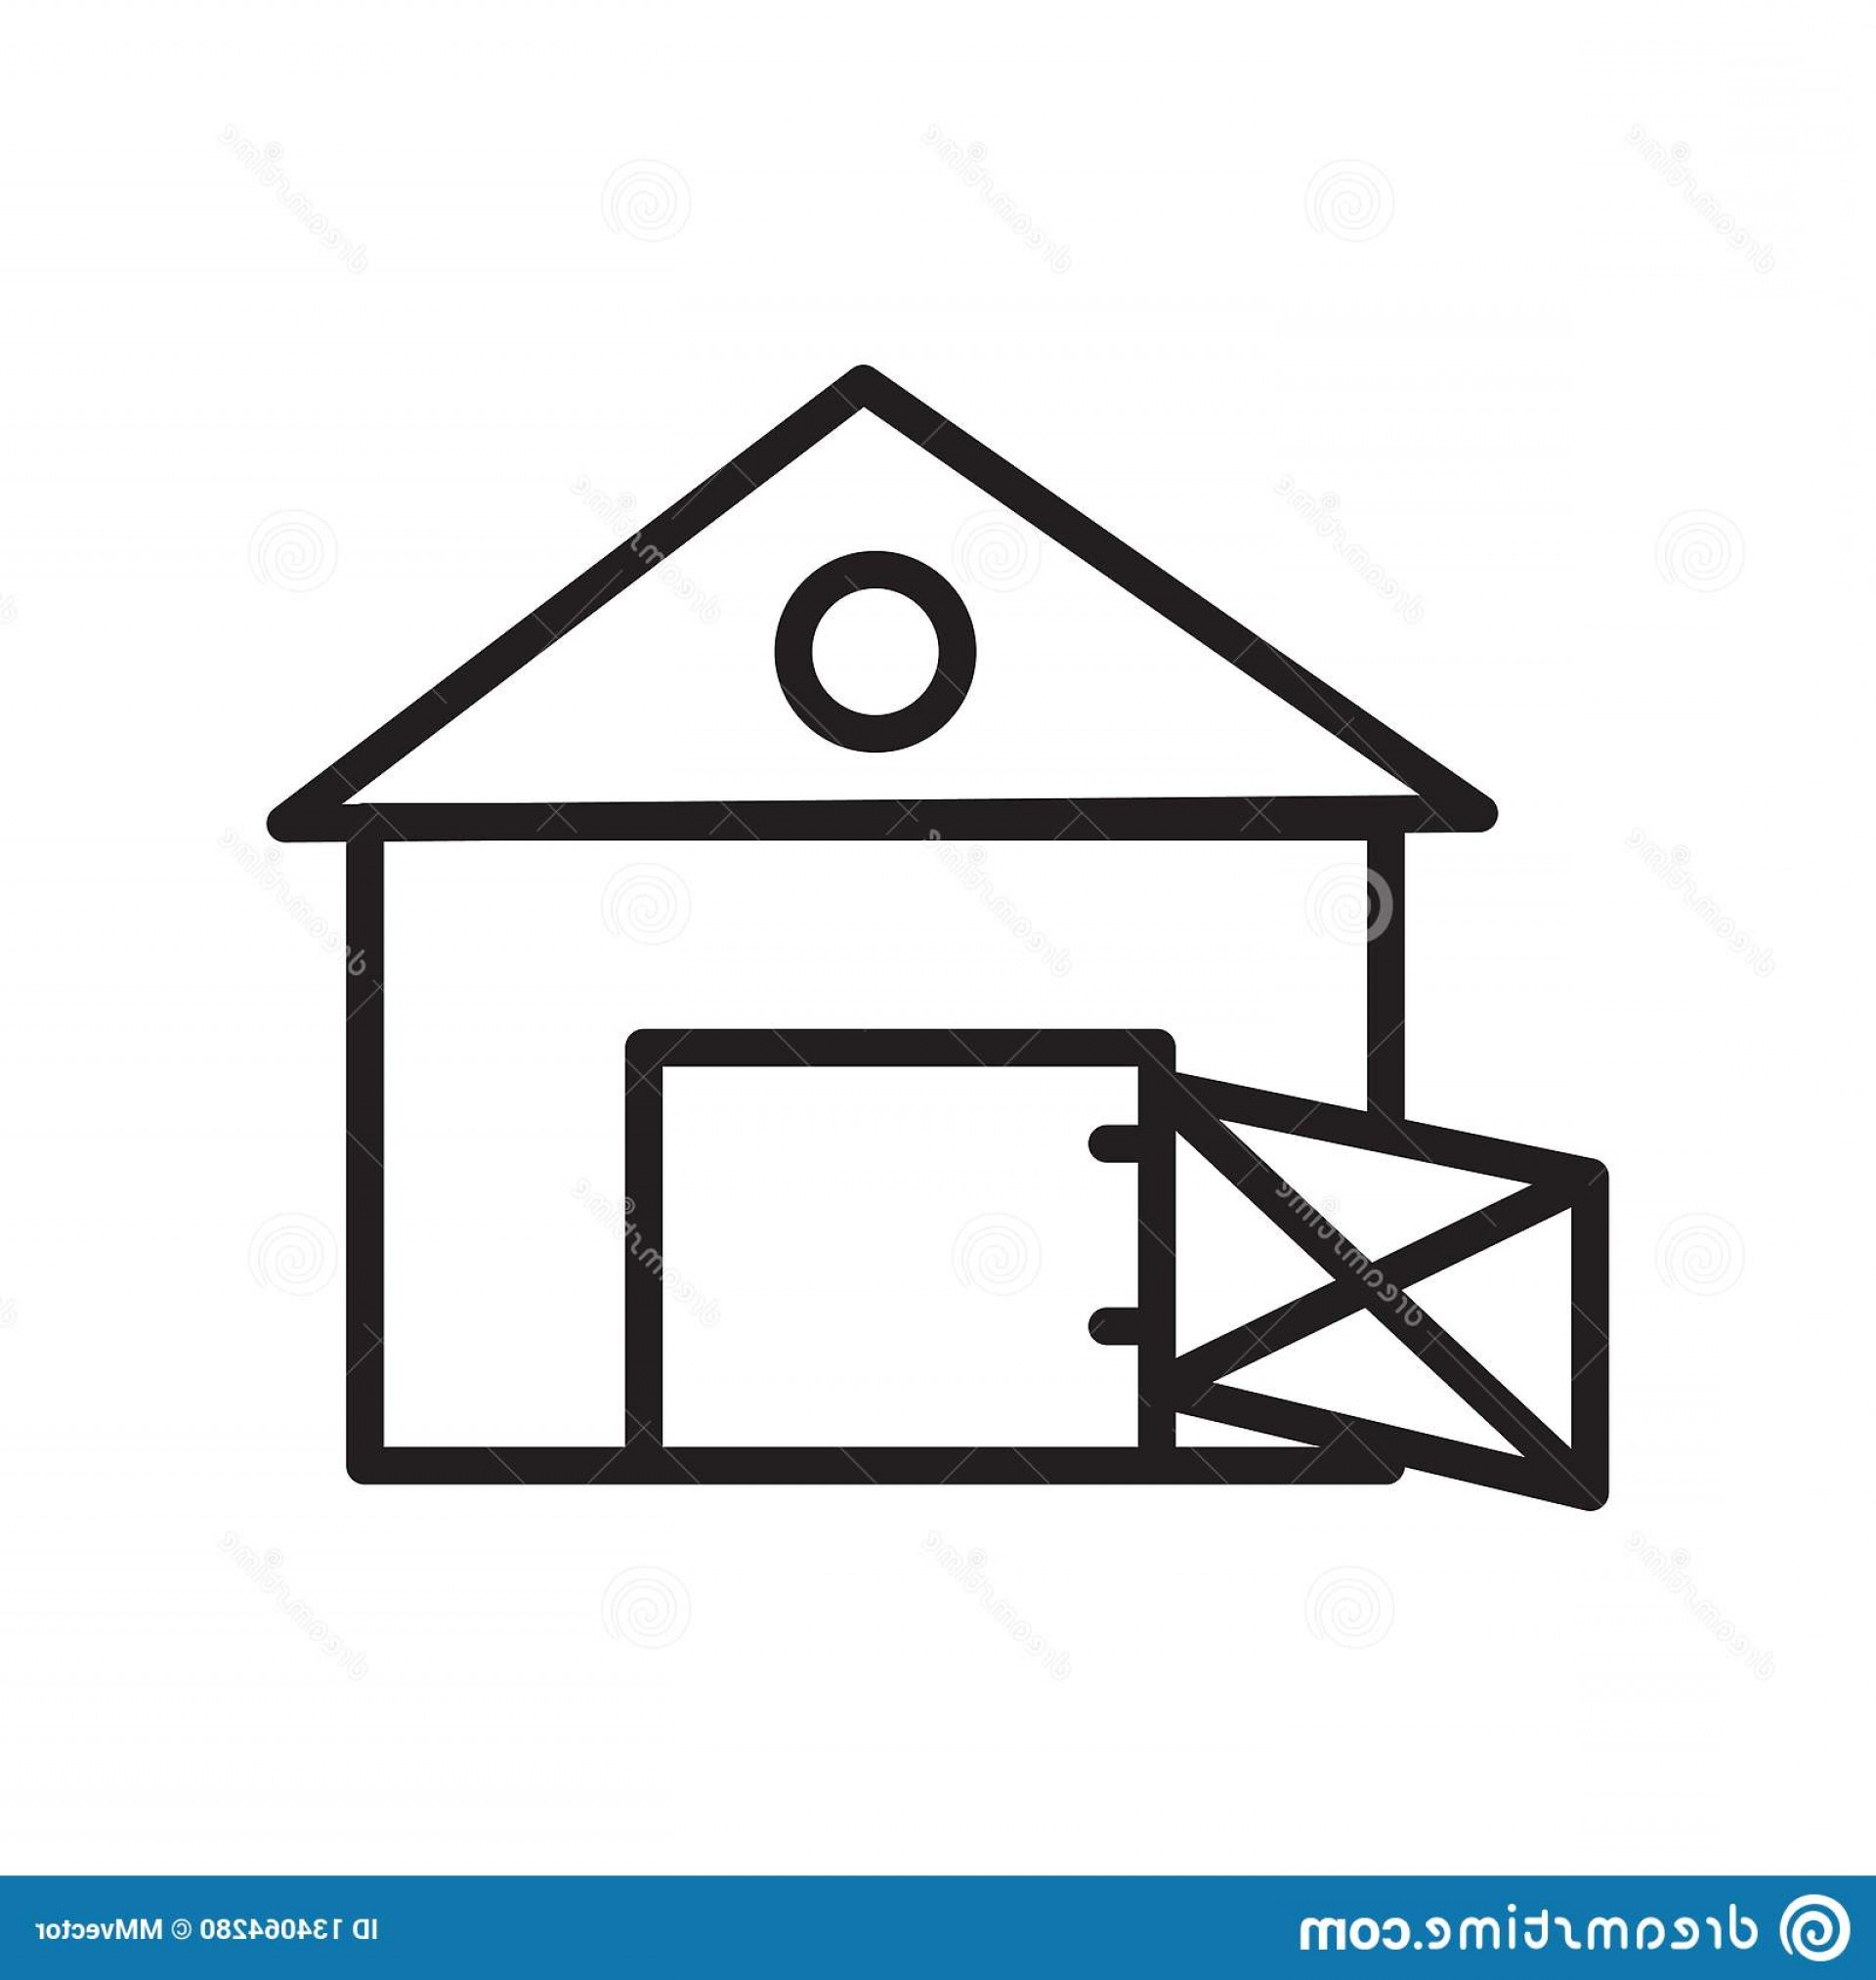 Barn Outline Vector: Barn Icon Vector Isolated White Background Barn Transparent Sign Linear Symbol Stroke Design Elements Outline Style Barn Image